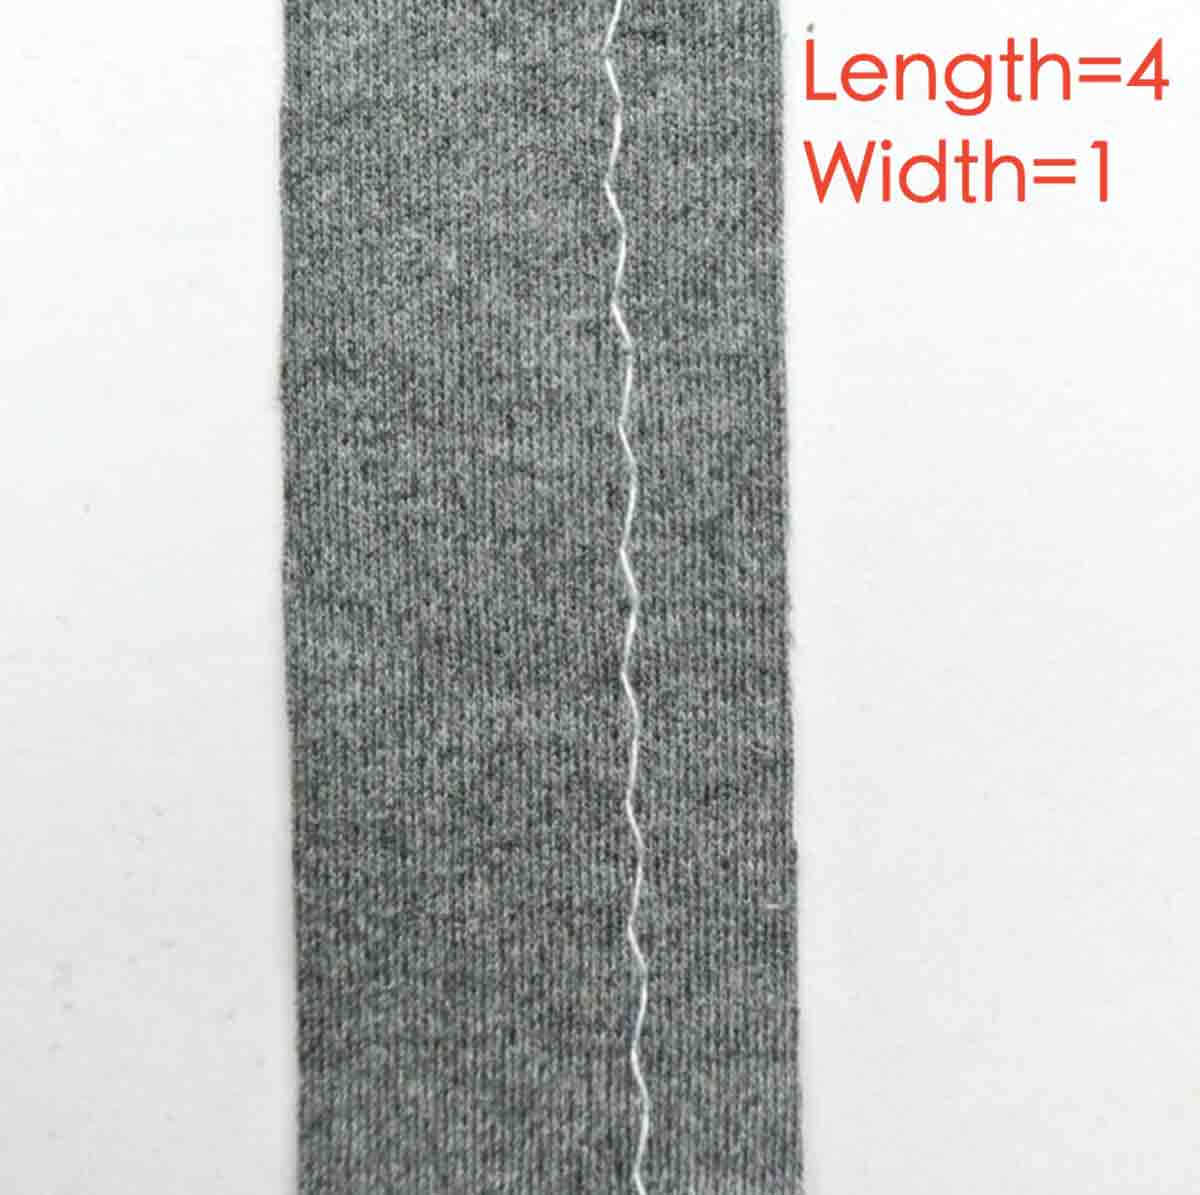 Long and narrow zigzag stitch. Length=4, width =1